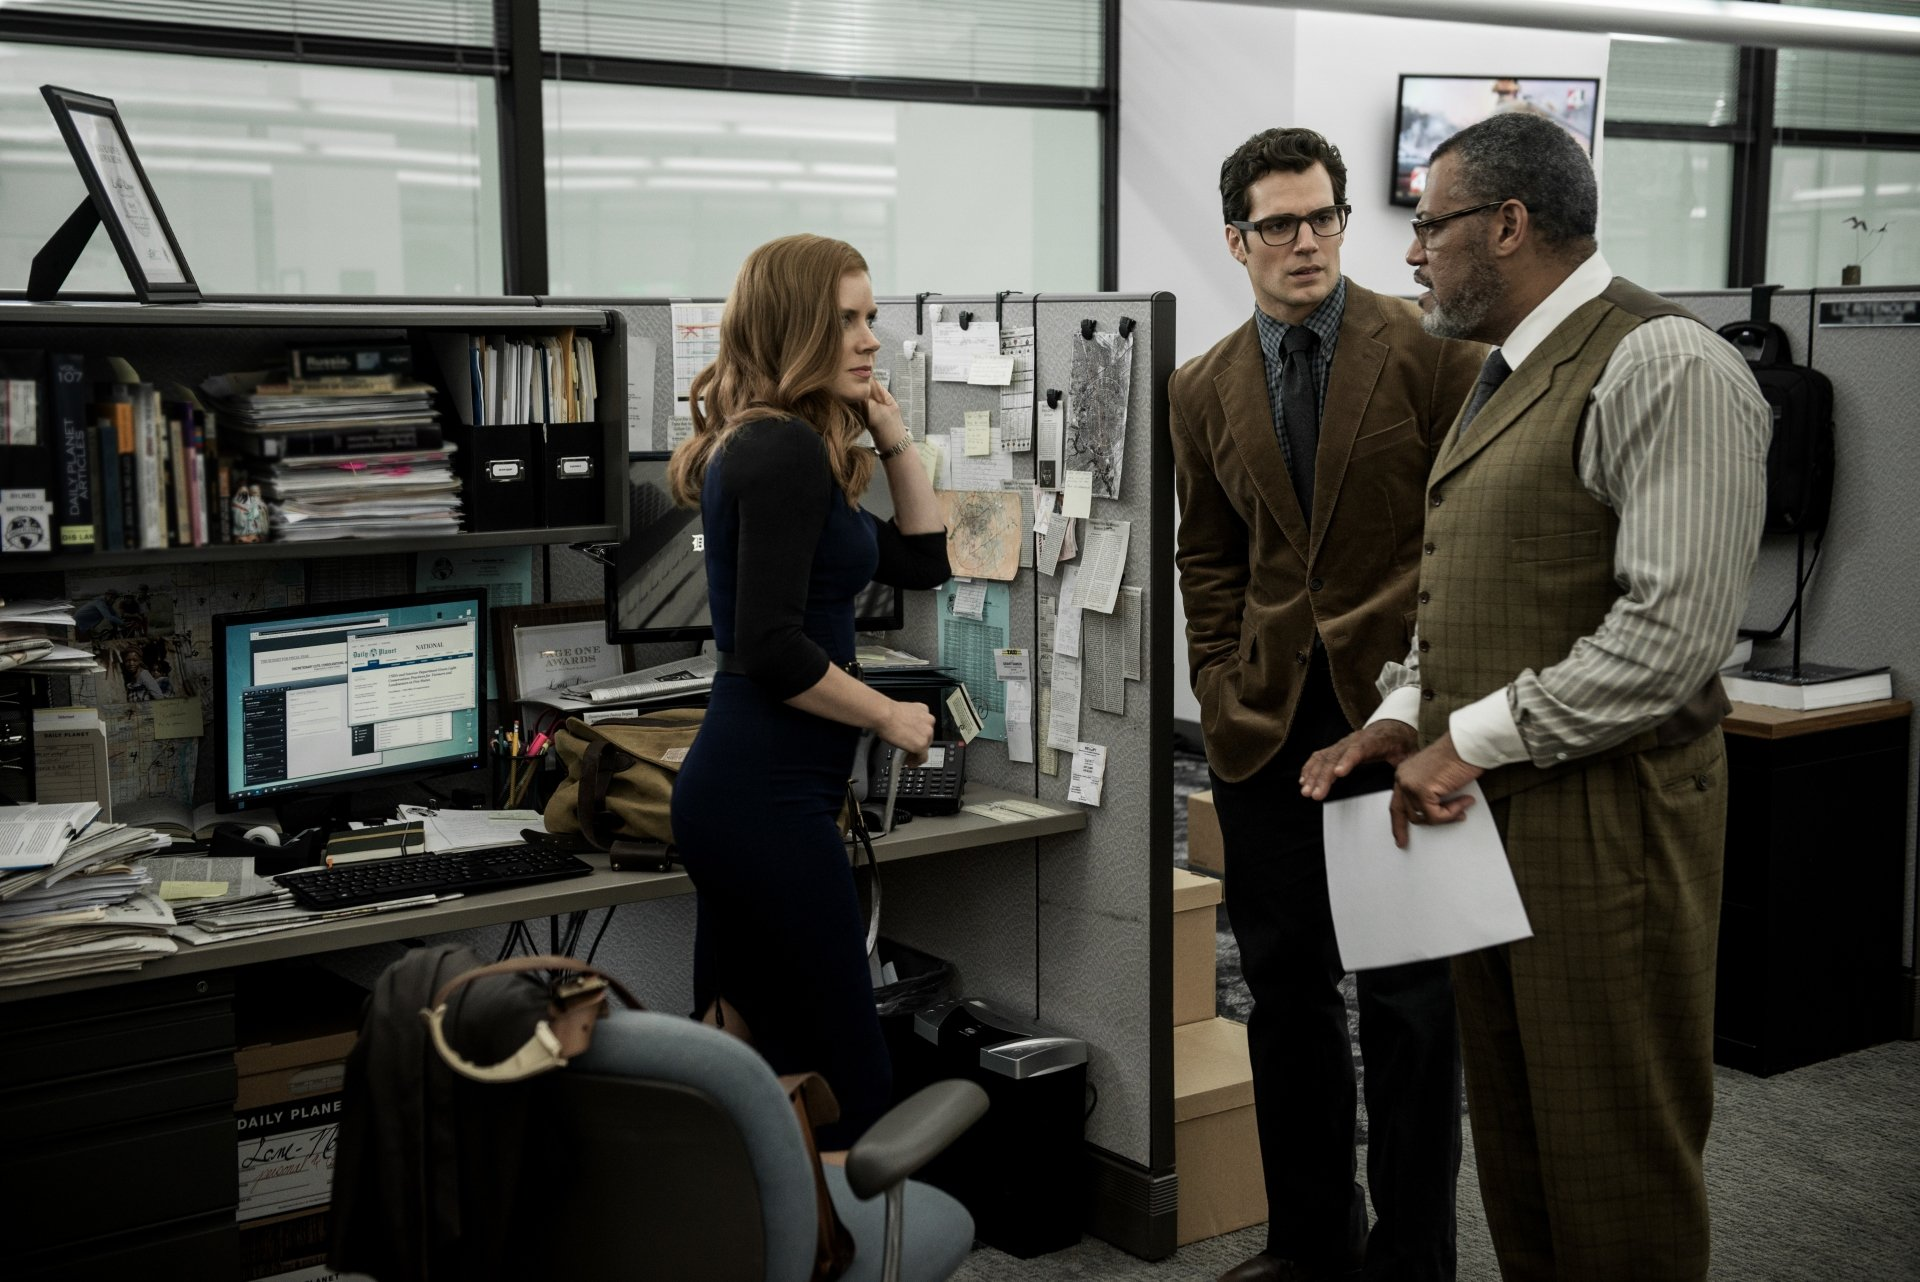 Movie - Batman v Superman: Dawn of Justice  Lois Lane Amy Adams Clark Kent Laurence Fishburne Superman Perry White Henry Cavill Wallpaper